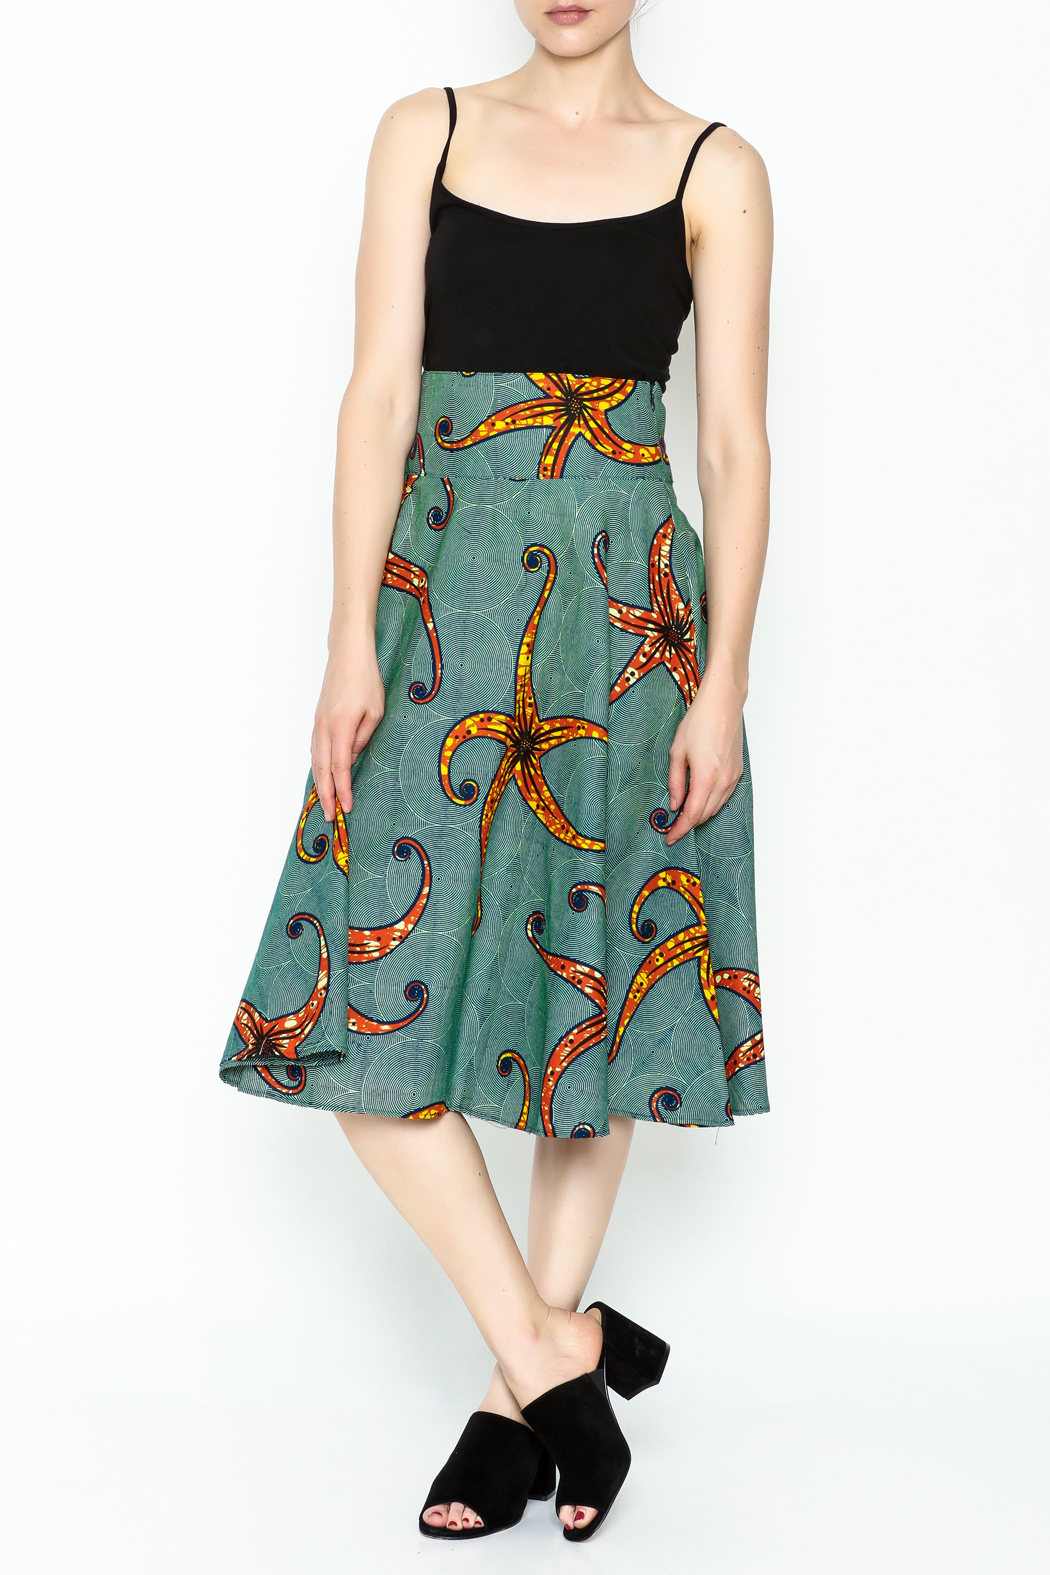 Royal Jelly Harlem Sophia Skirt - Main Image